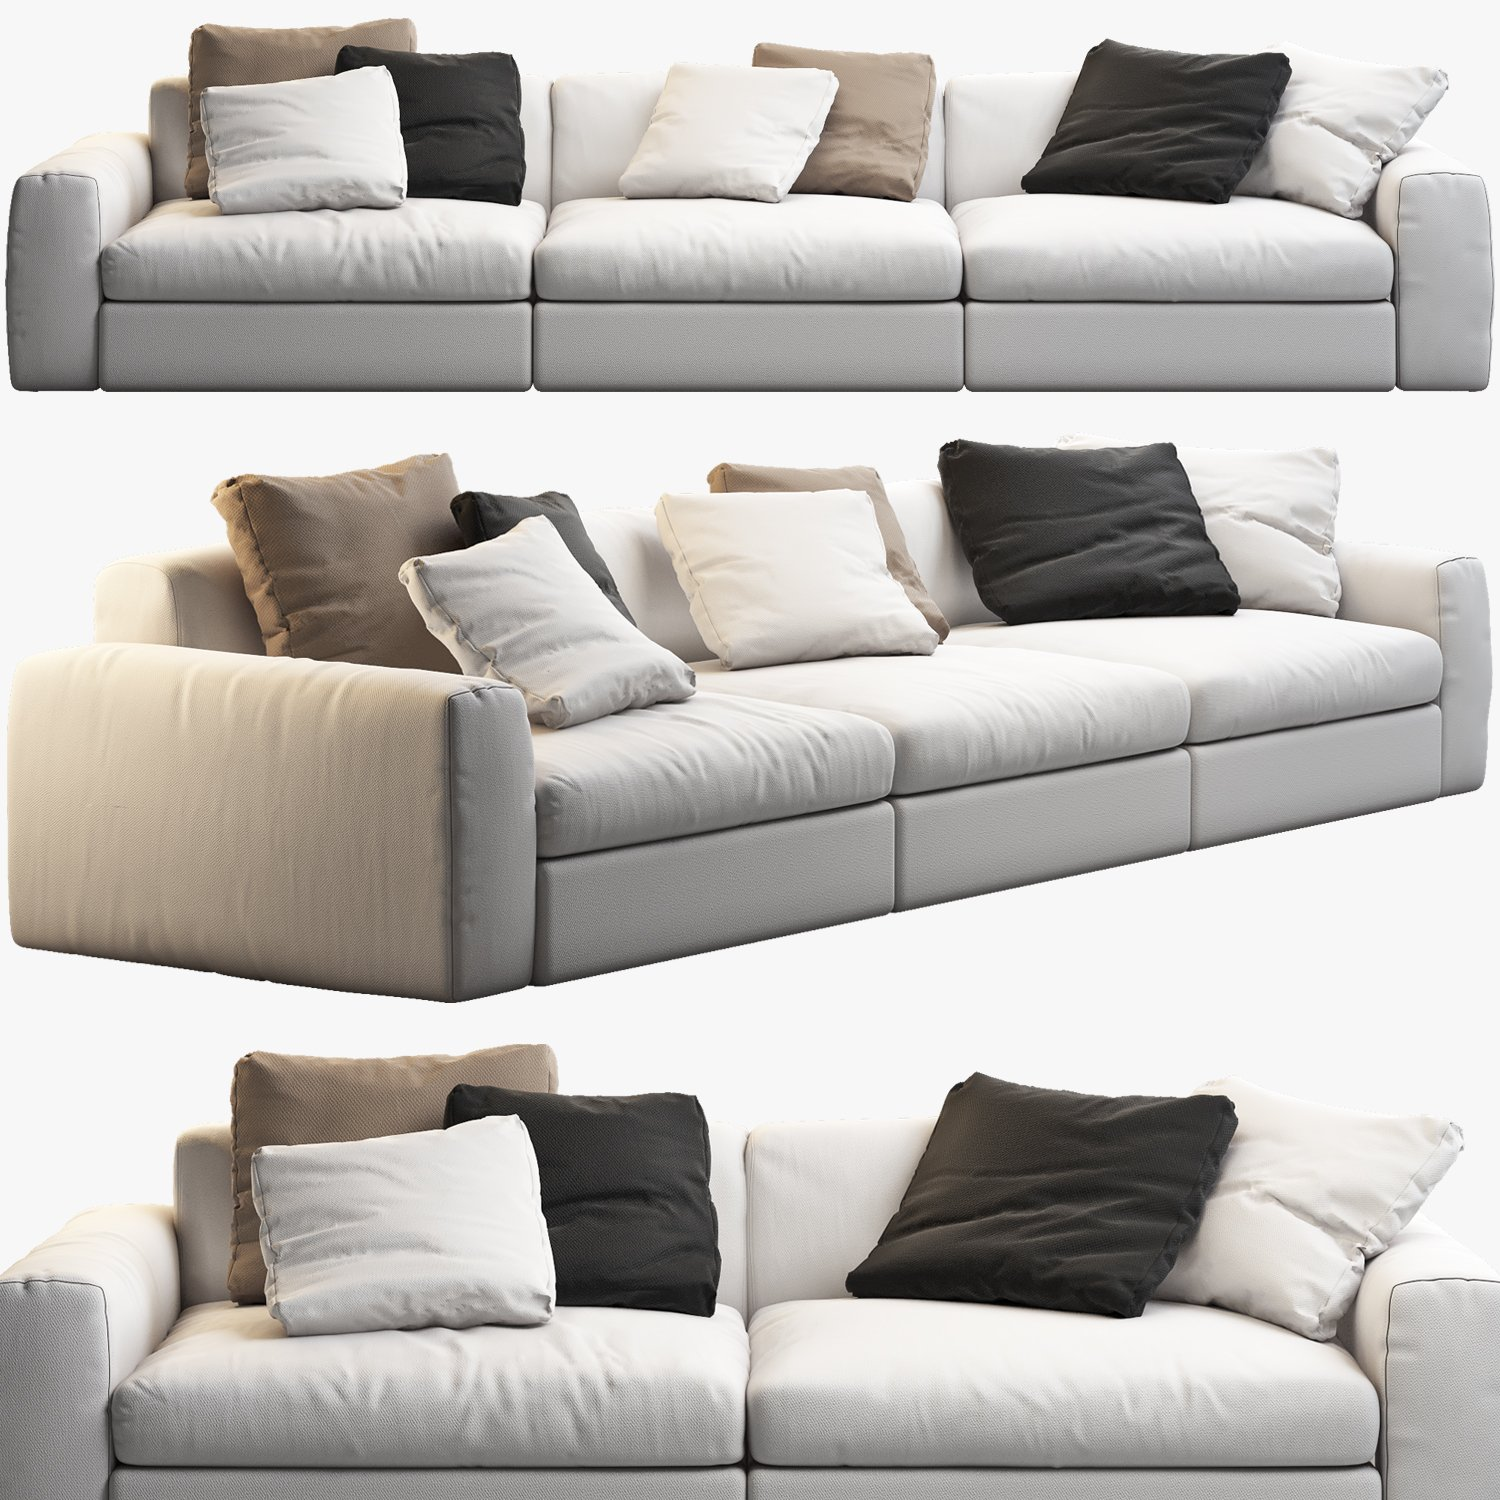 Dune Sofa Classic Back Review Home Co